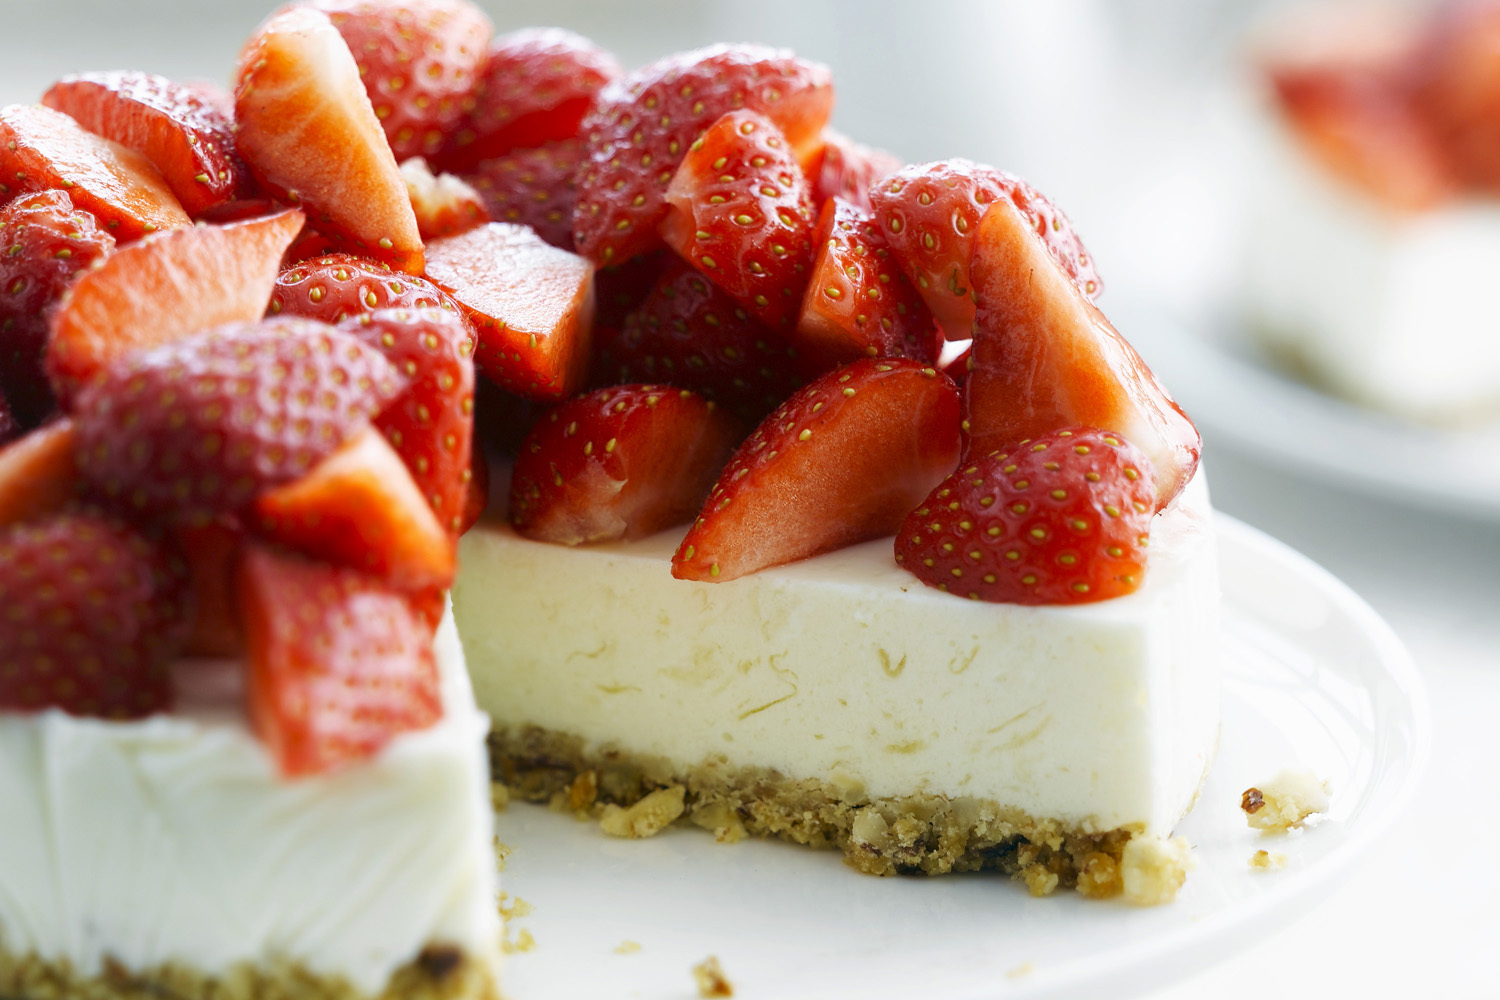 No-Bake Strawberry and Pineapple Cheesecake